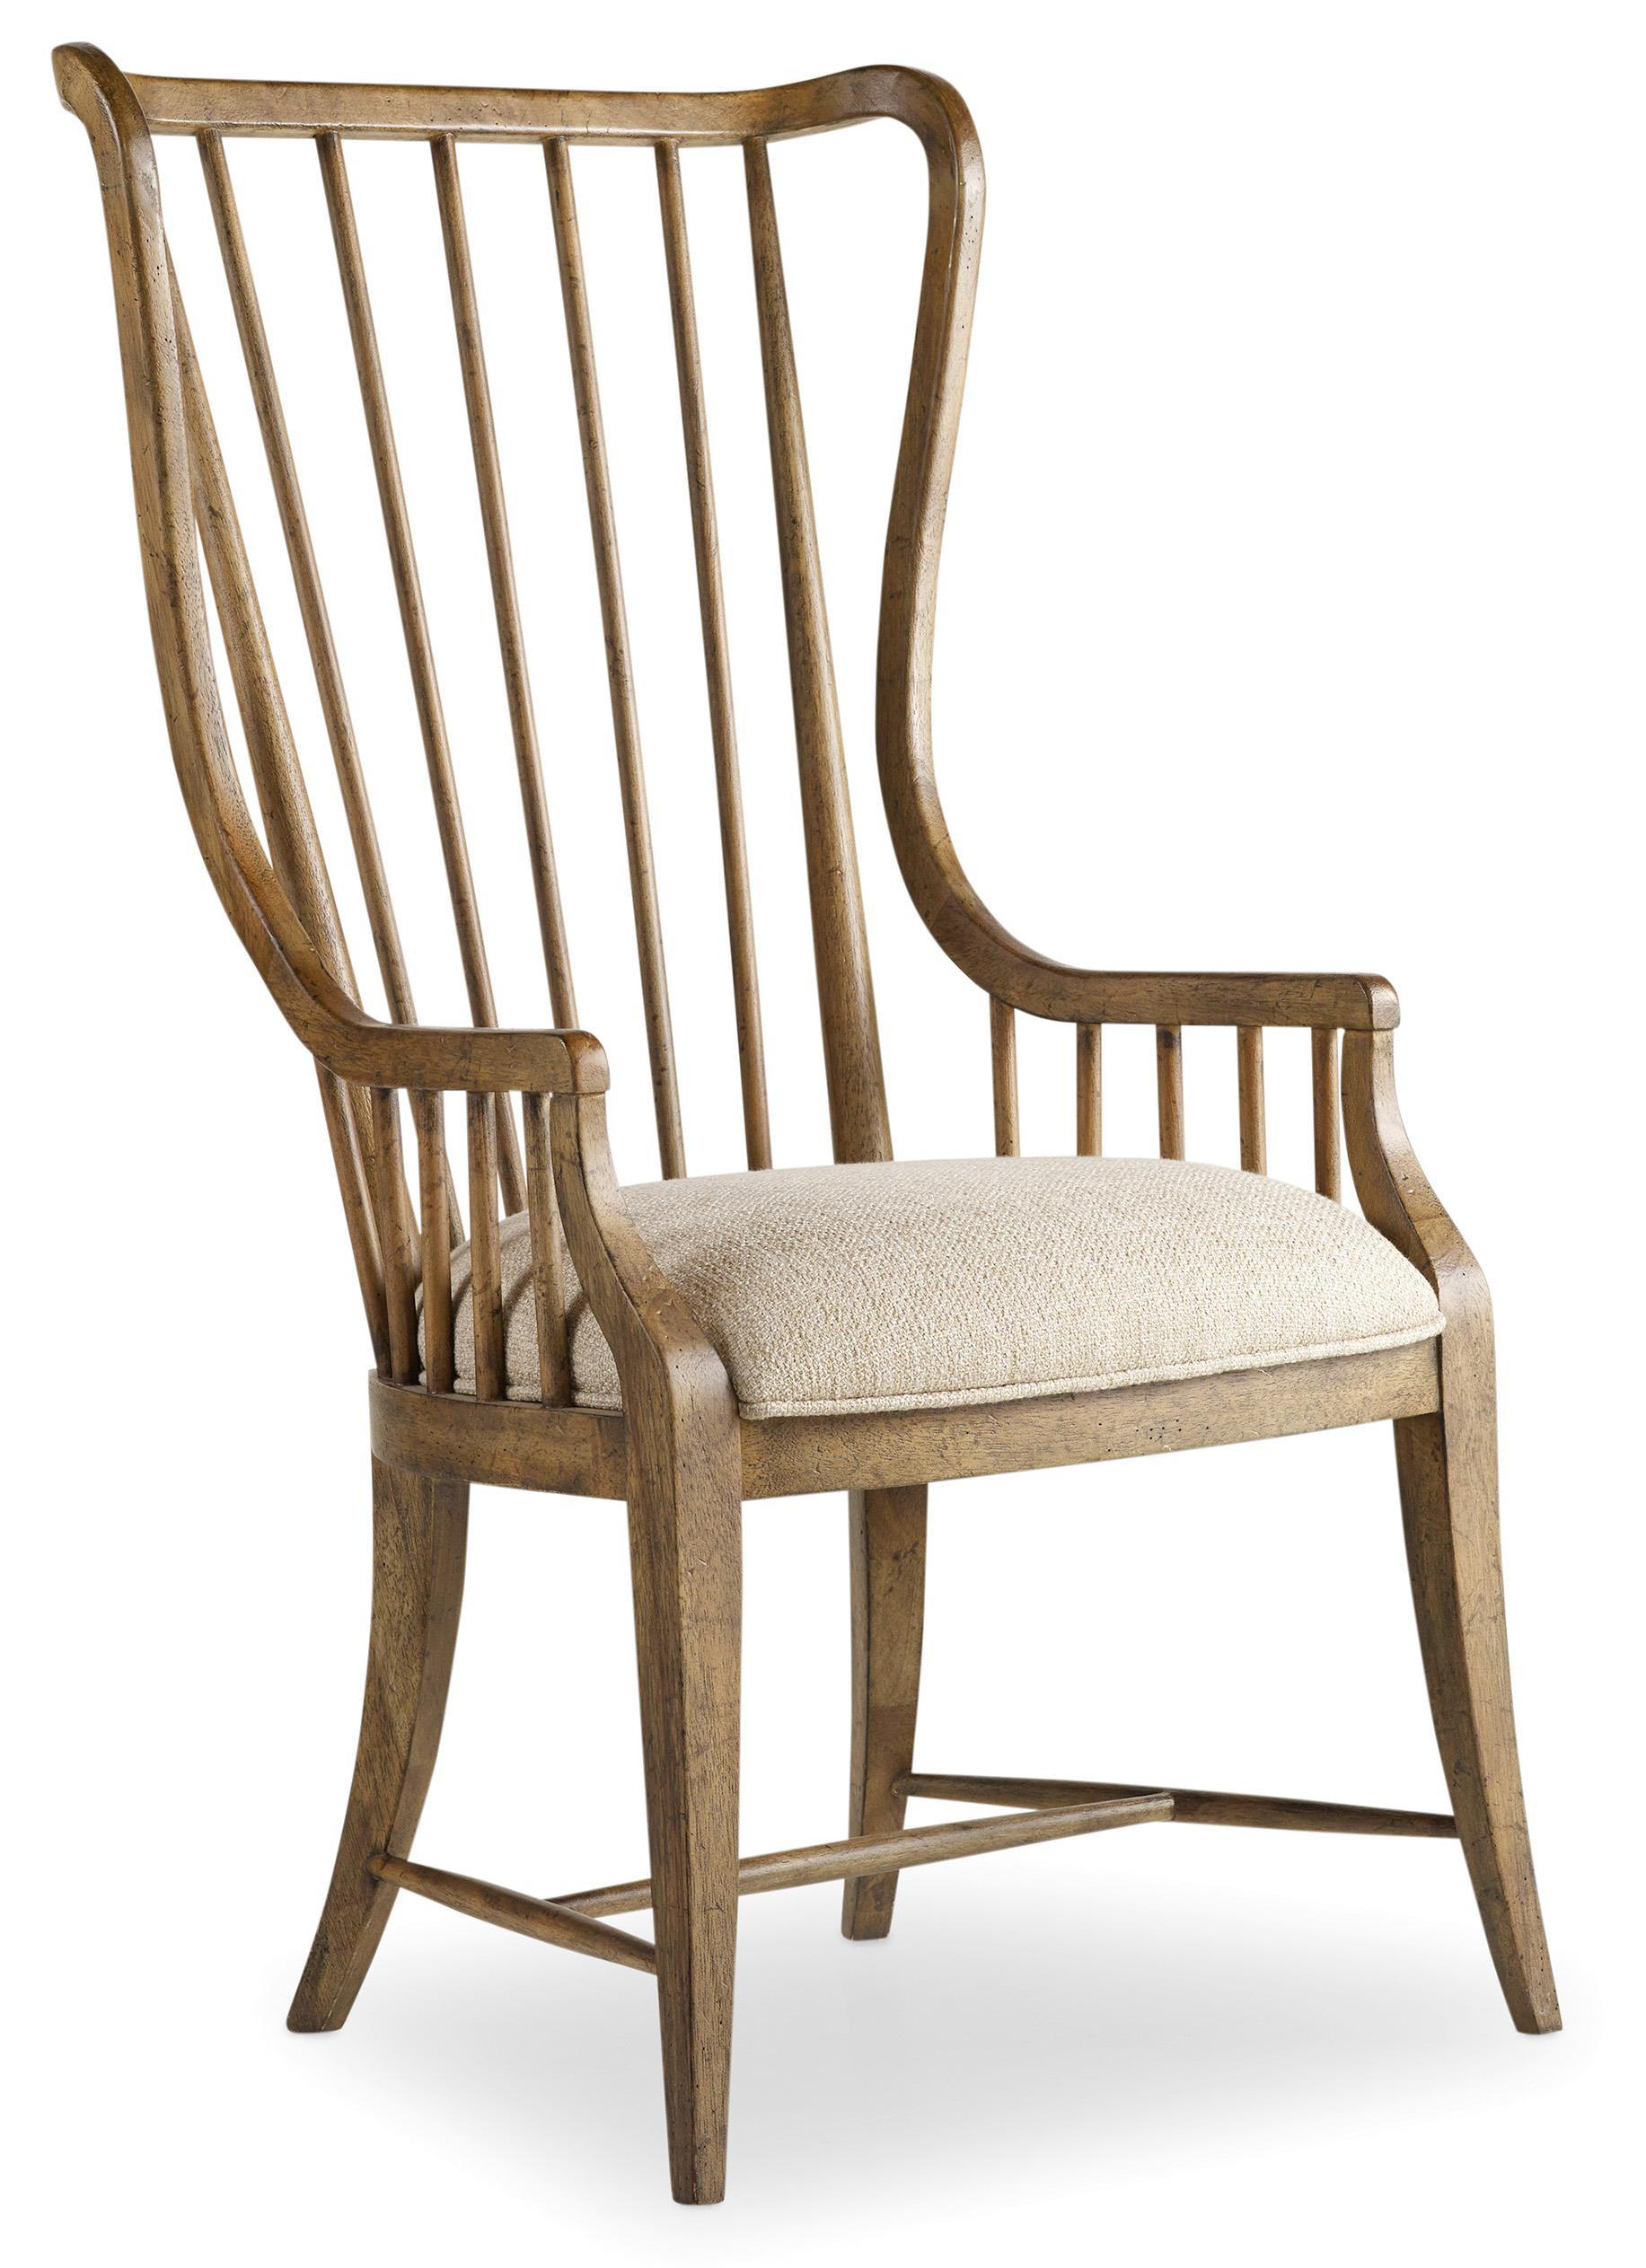 Sanctuary Tall Spindle Arm Chair by Hooker Furniture at Stoney Creek Furniture